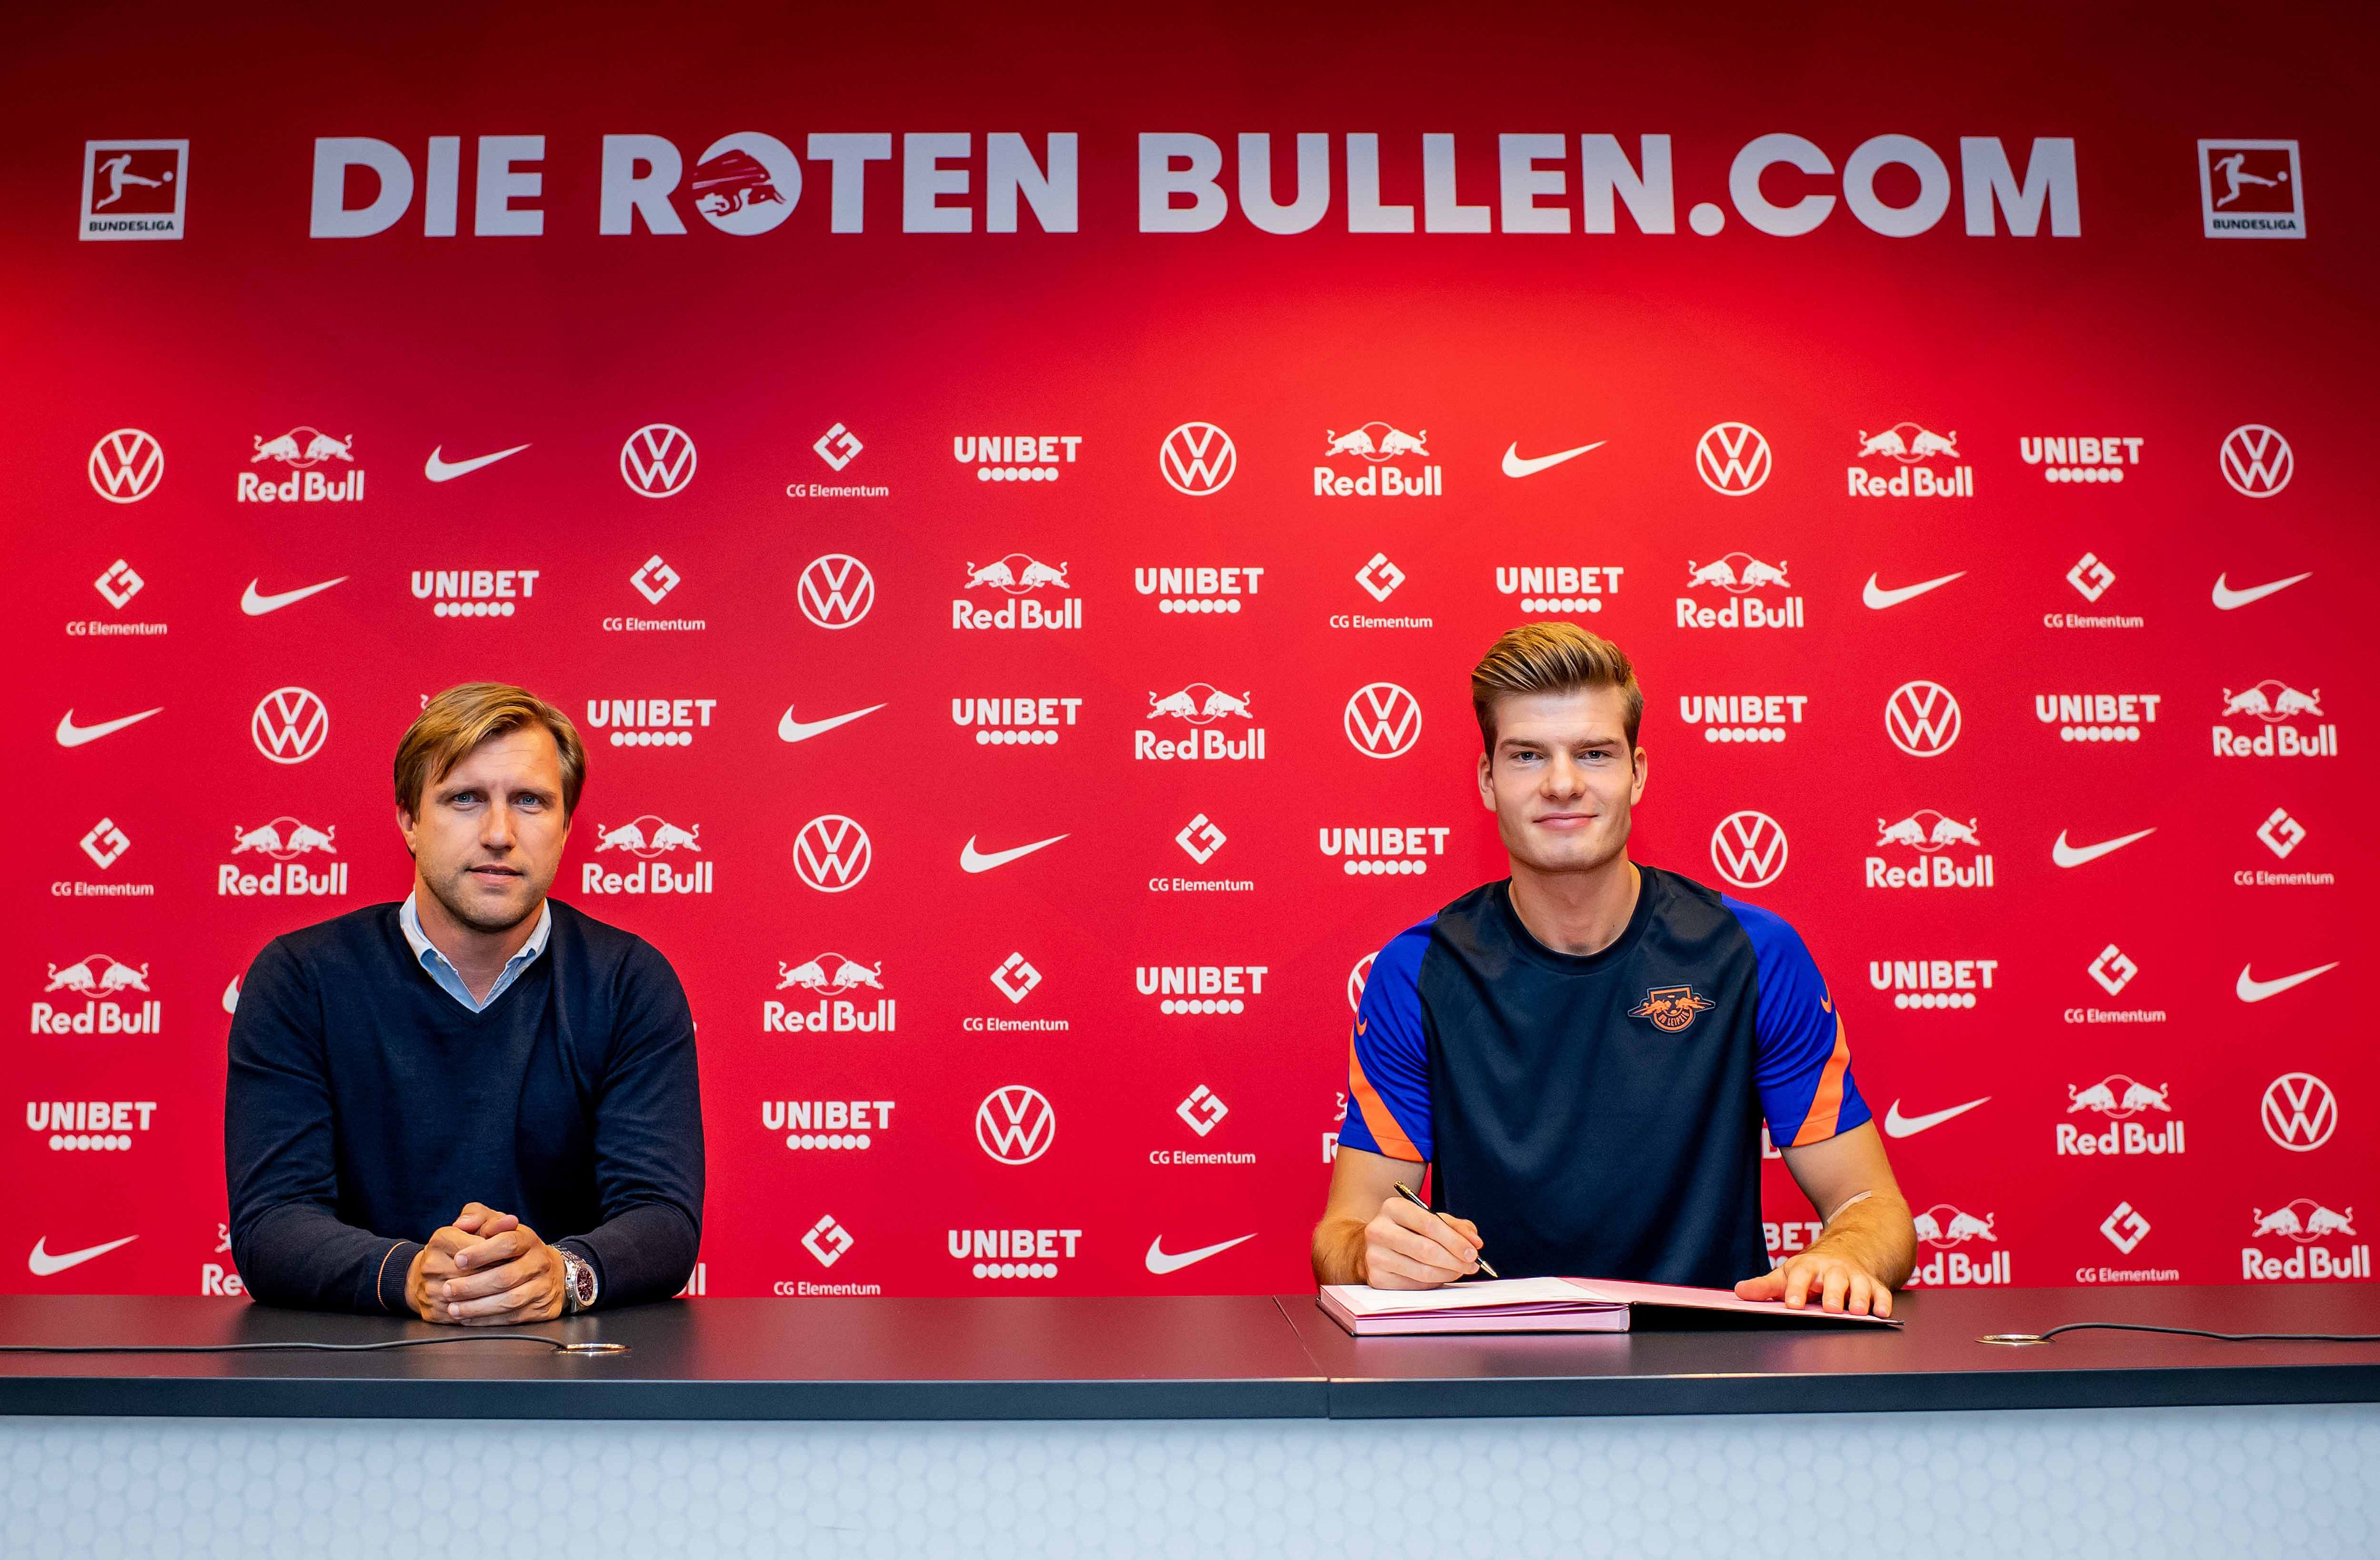 Werner's replacement is secured, another top Norweigan talent steps up